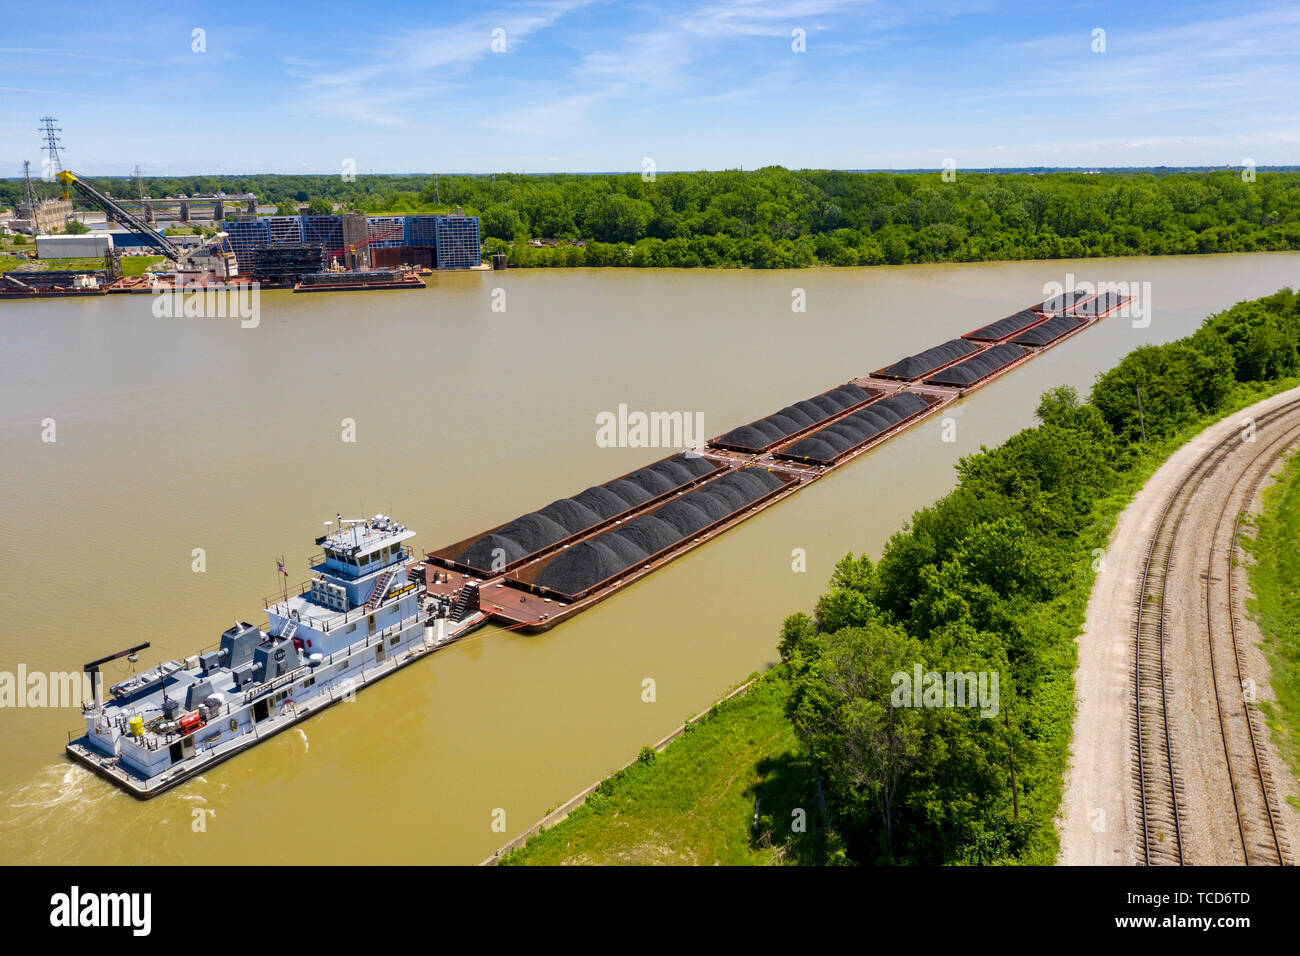 Louisville, Kentucky - The towboat Diane B Siegel pushes barges loaded with coal on the Ohio River. - Stock Image